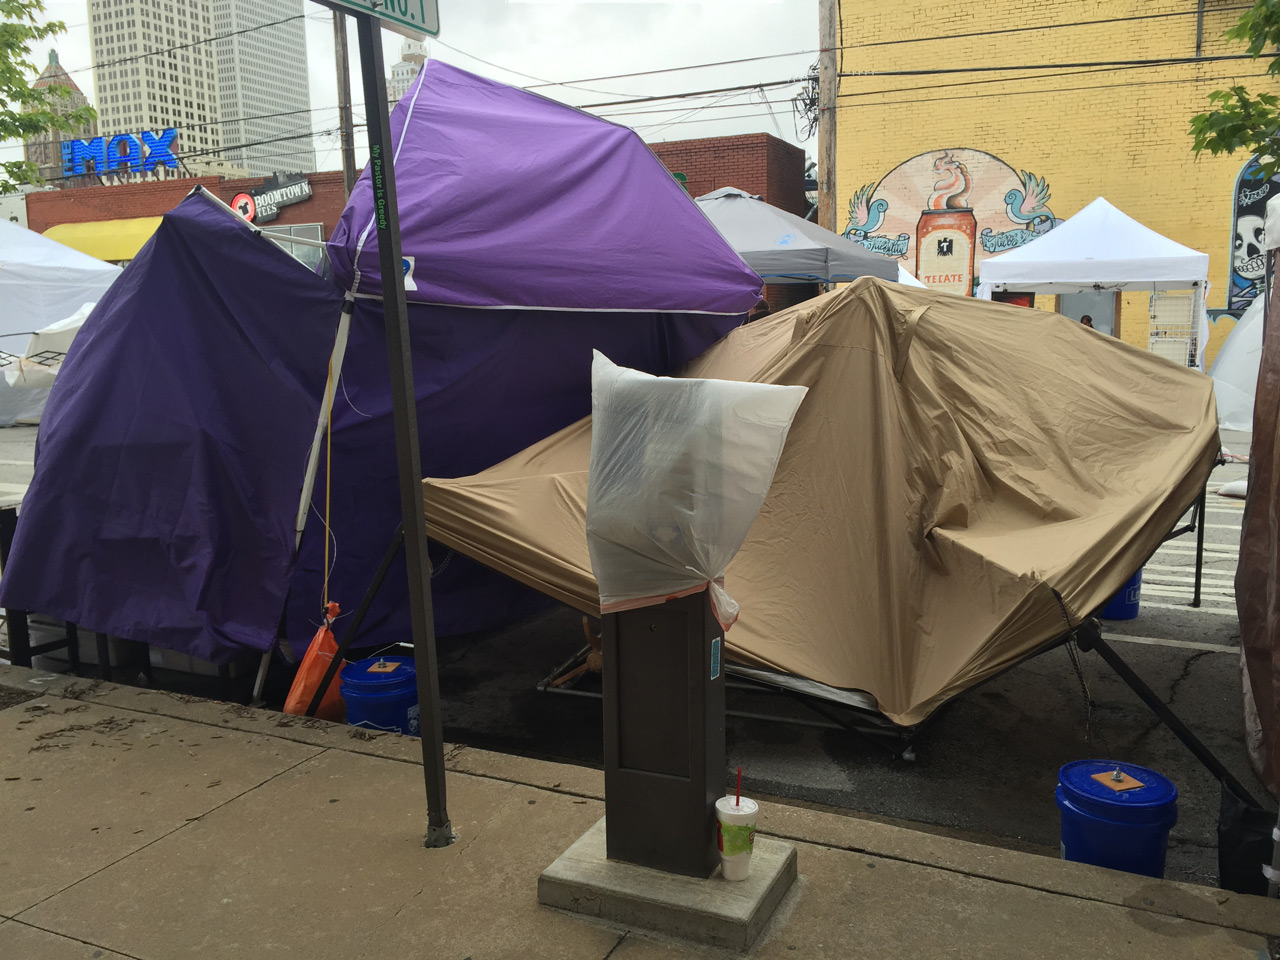 2015-blue-dome-collapsed-tents.jpg